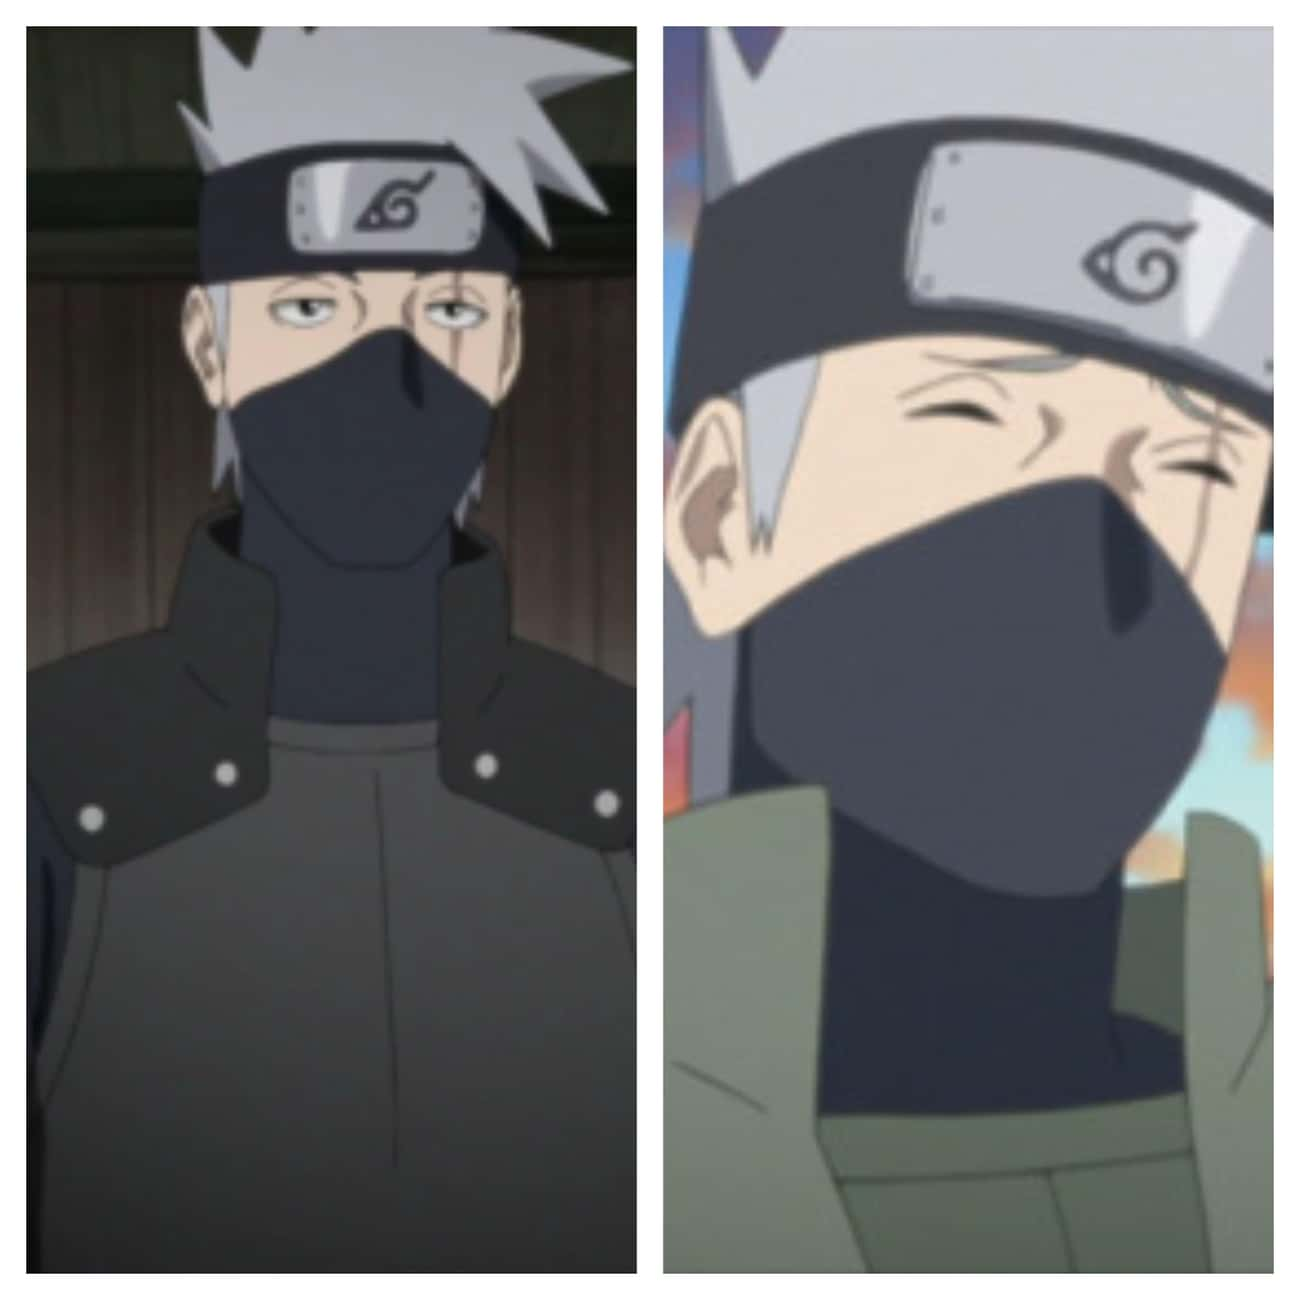 Kakashi Hatake is listed (or ranked) 4 on the list How Naruto Characters Look In Boruto Compared To Their Original Form